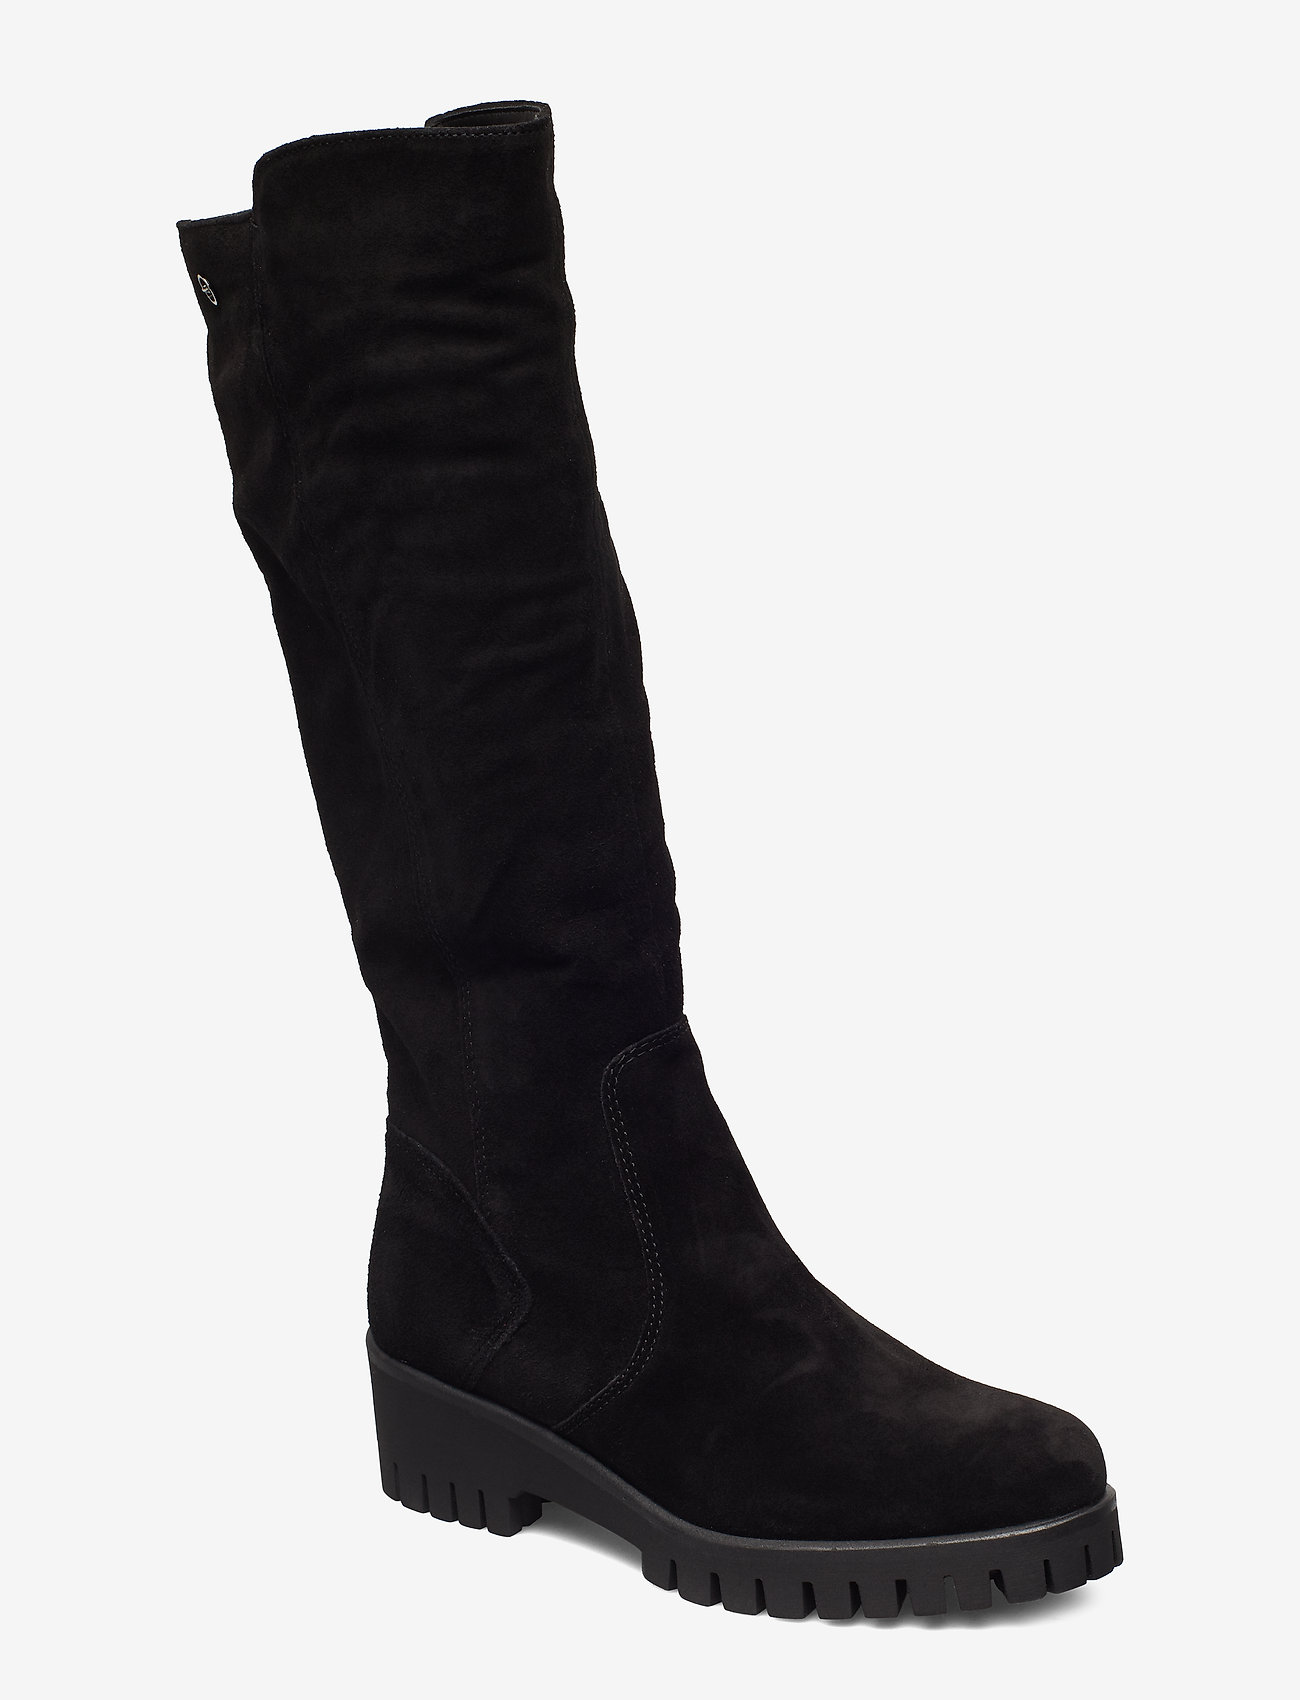 Tamaris - Boots - long boots - black suede - 0